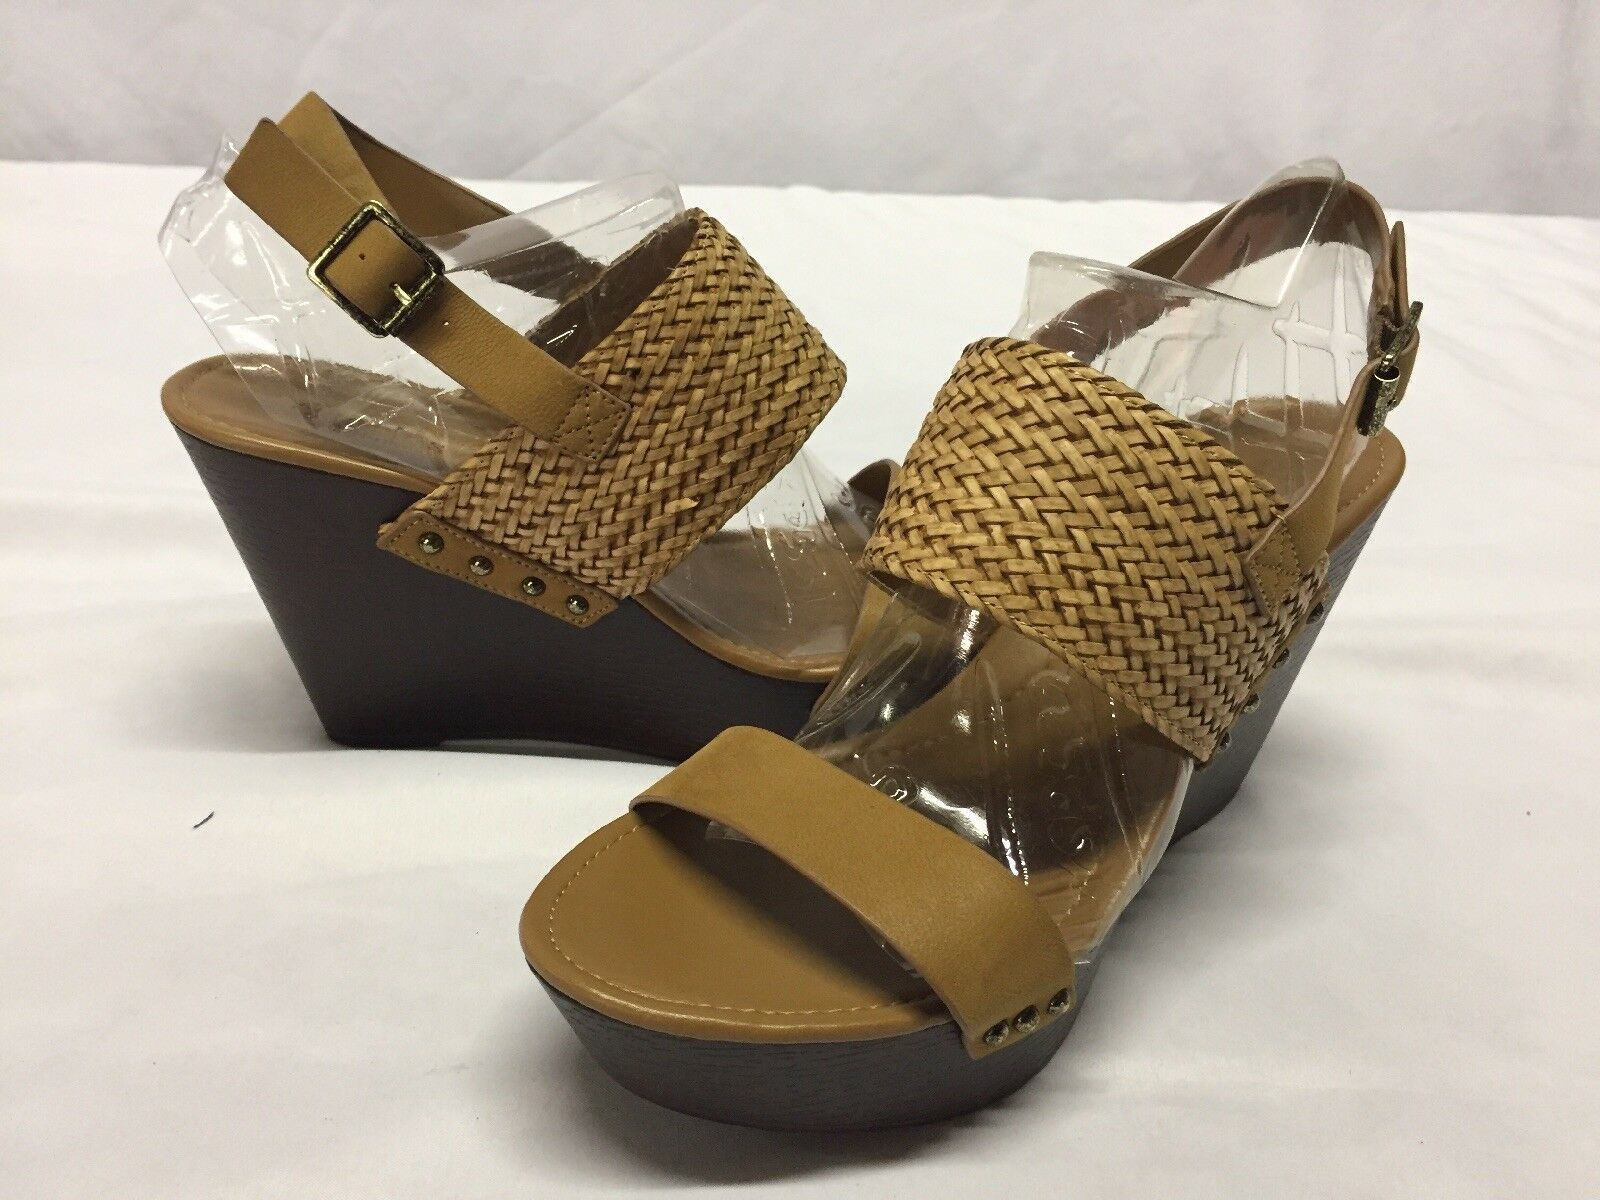 Charles By Charles David Wedge Sandals, Tan, Size 9 M ...HEEL 3